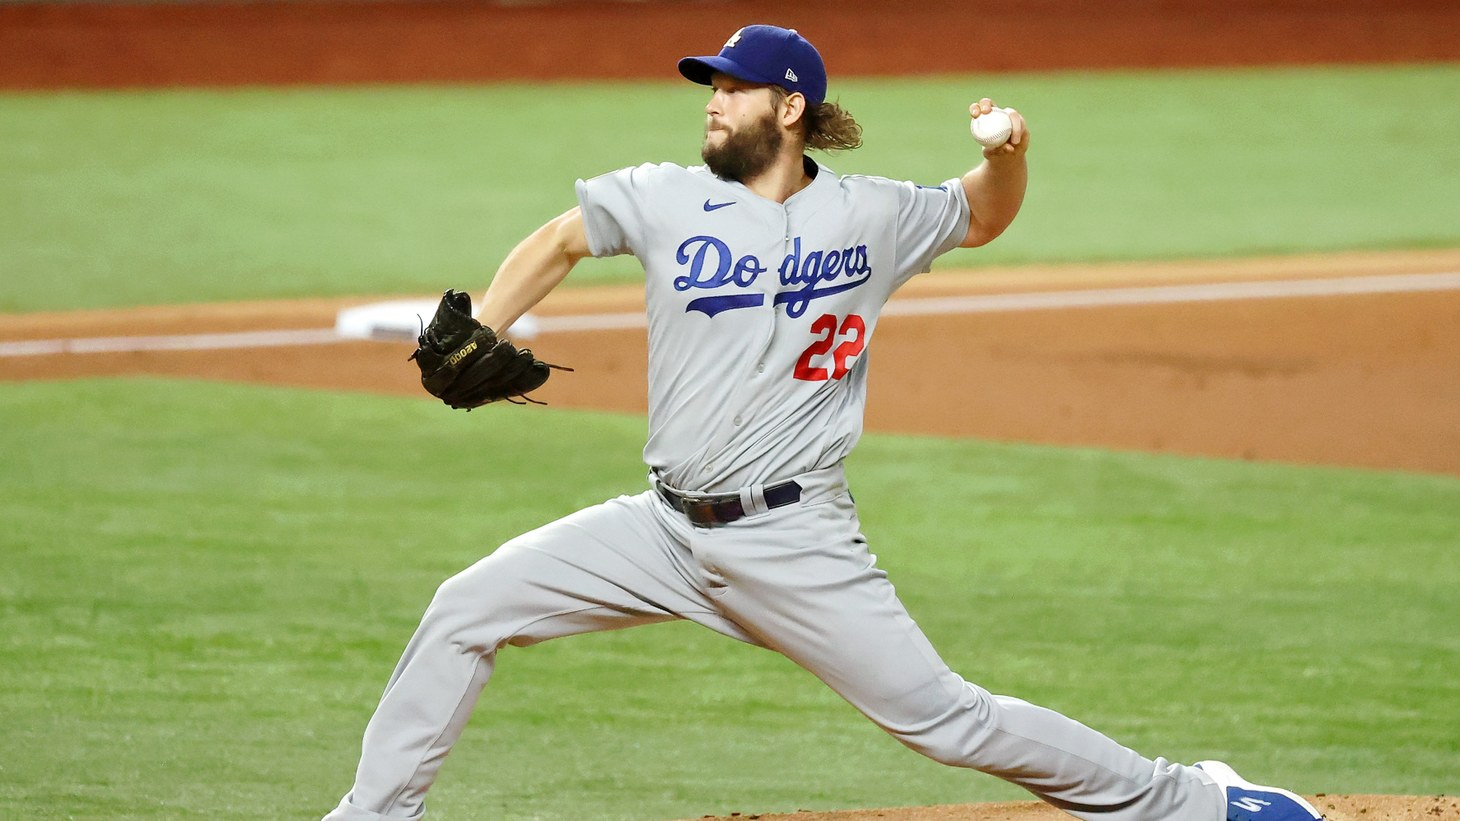 LA Dodgers starting pitcher Clayton Kershaw (22) pitches against the Tampa Bay Rays during the first inning during game five of the 2020 World Series at Globe Life Field.